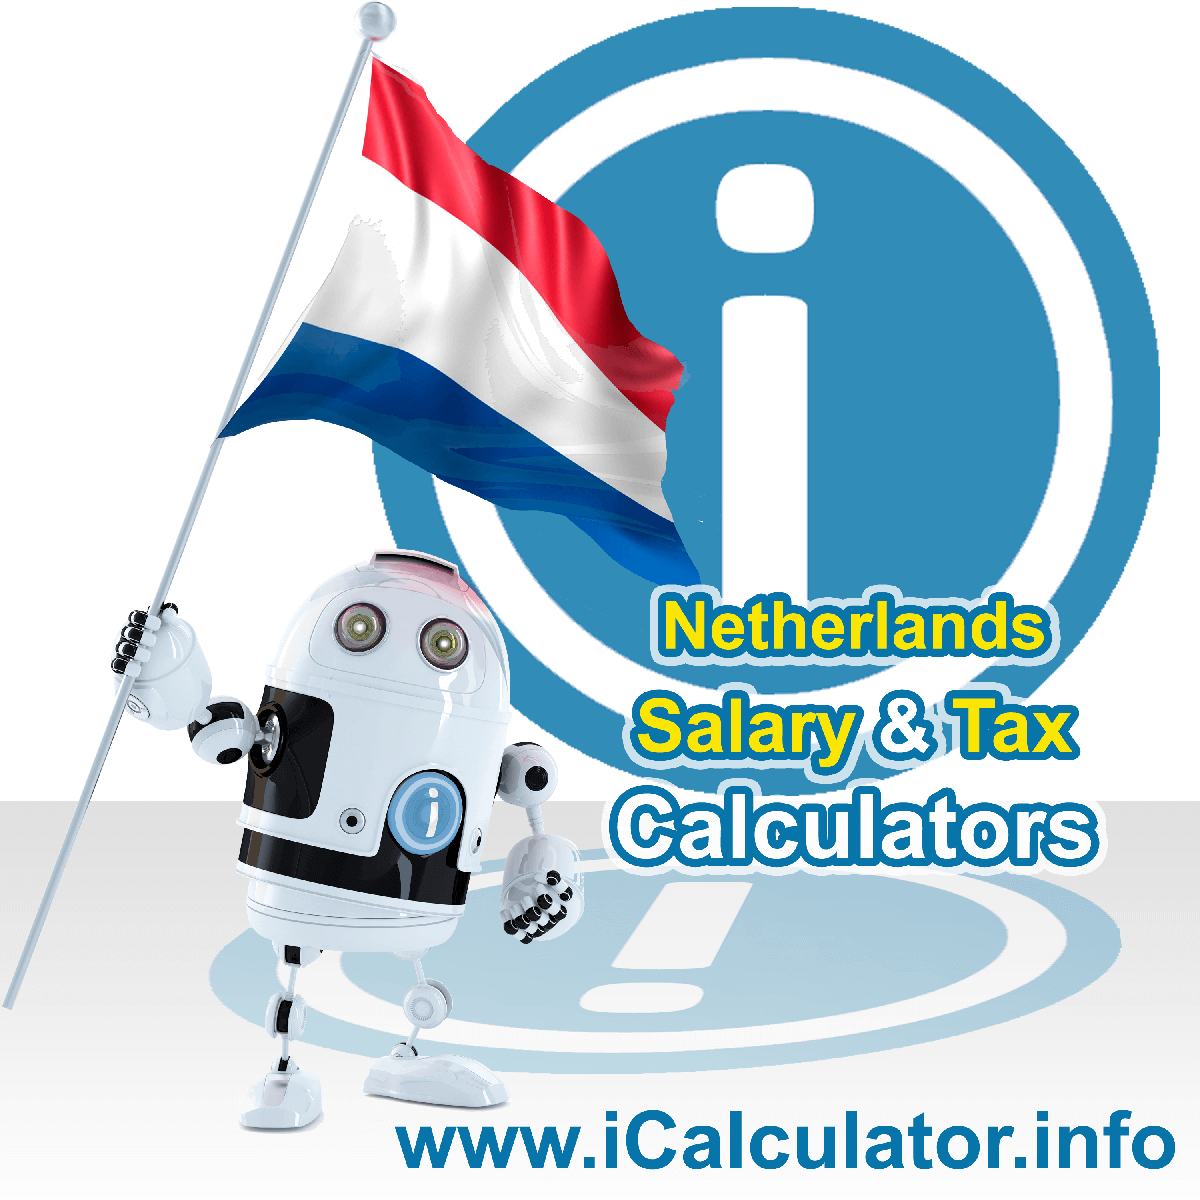 Netherlands Tax Calculator. This image shows the Netherlands flag and information relating to the tax formula for the Netherlands Salary Calculator